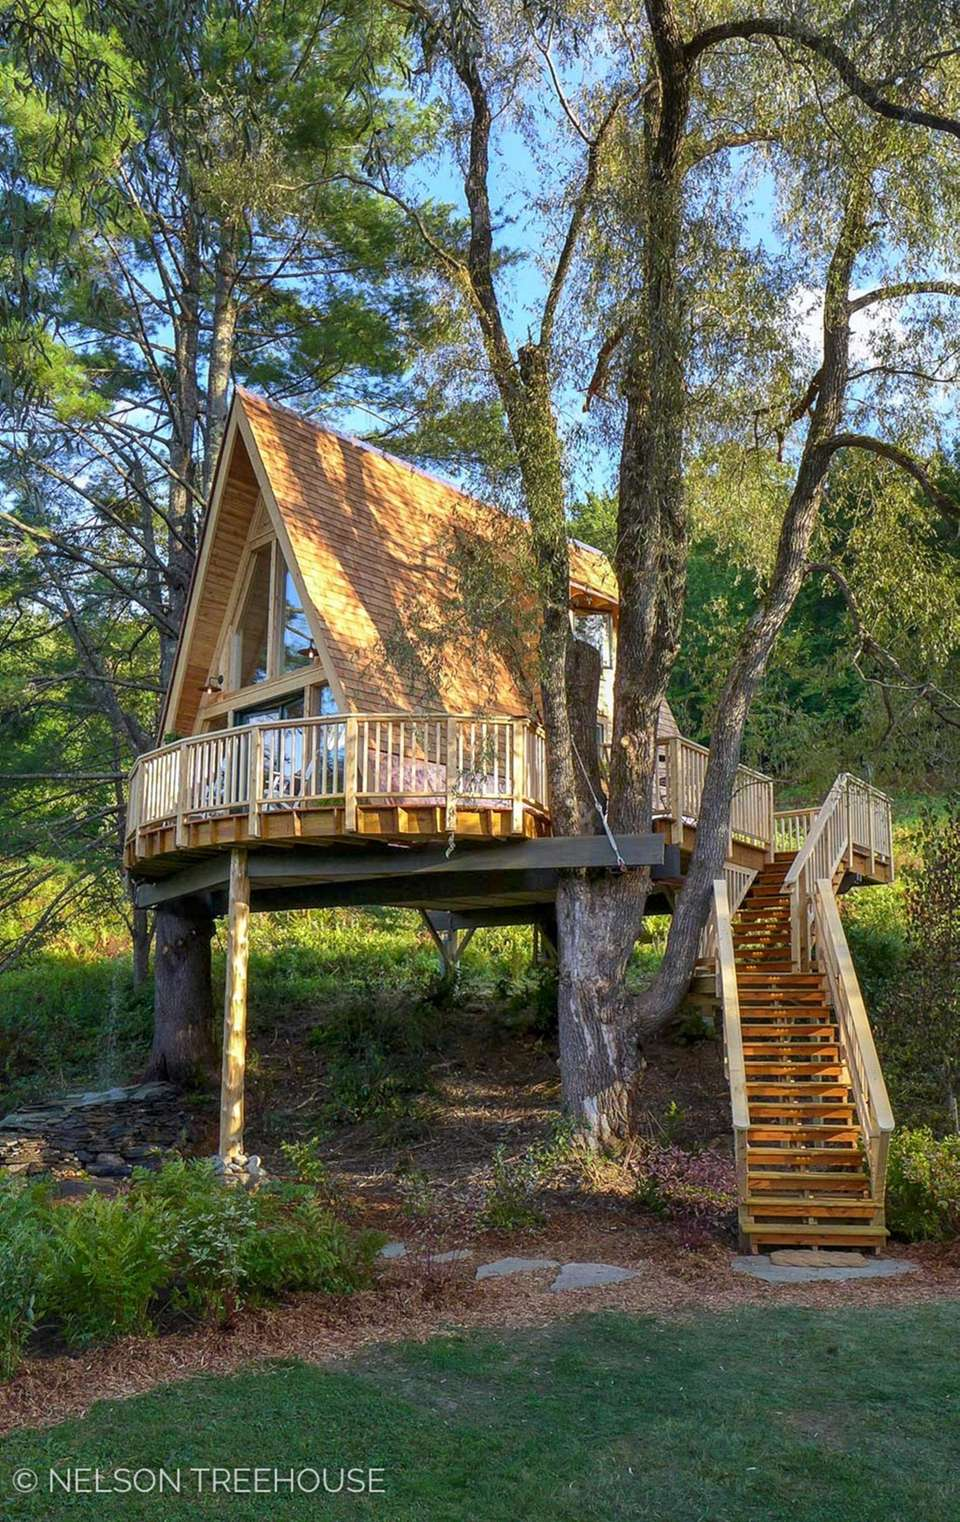 The Treehouse Village Inn offers rustic, luxury lodging